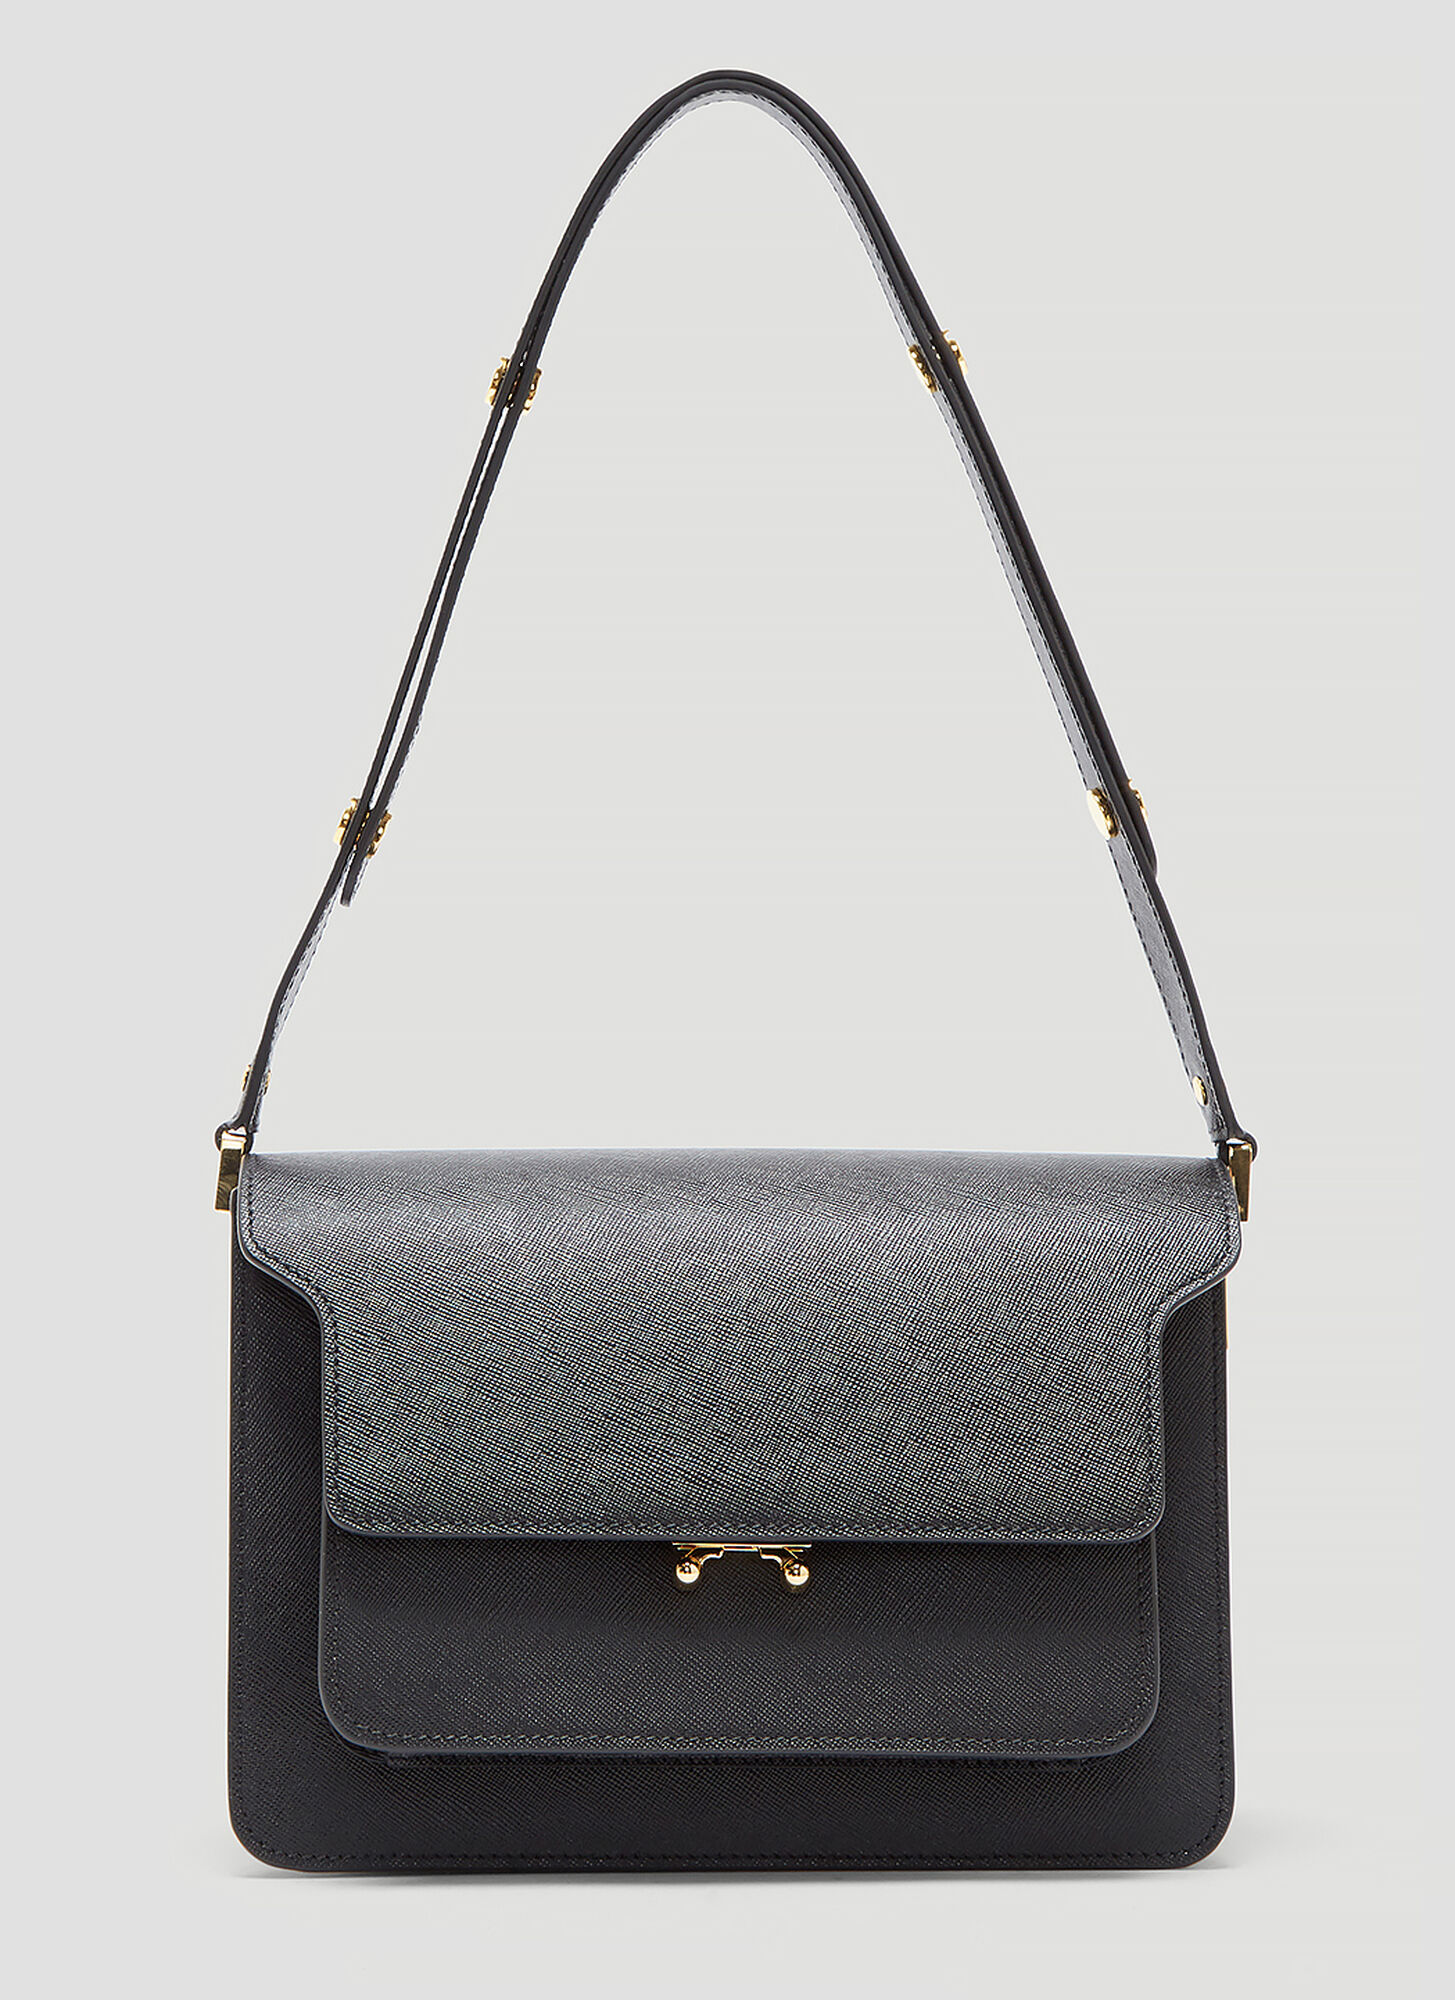 Marni Medium Trunk Bag in Black